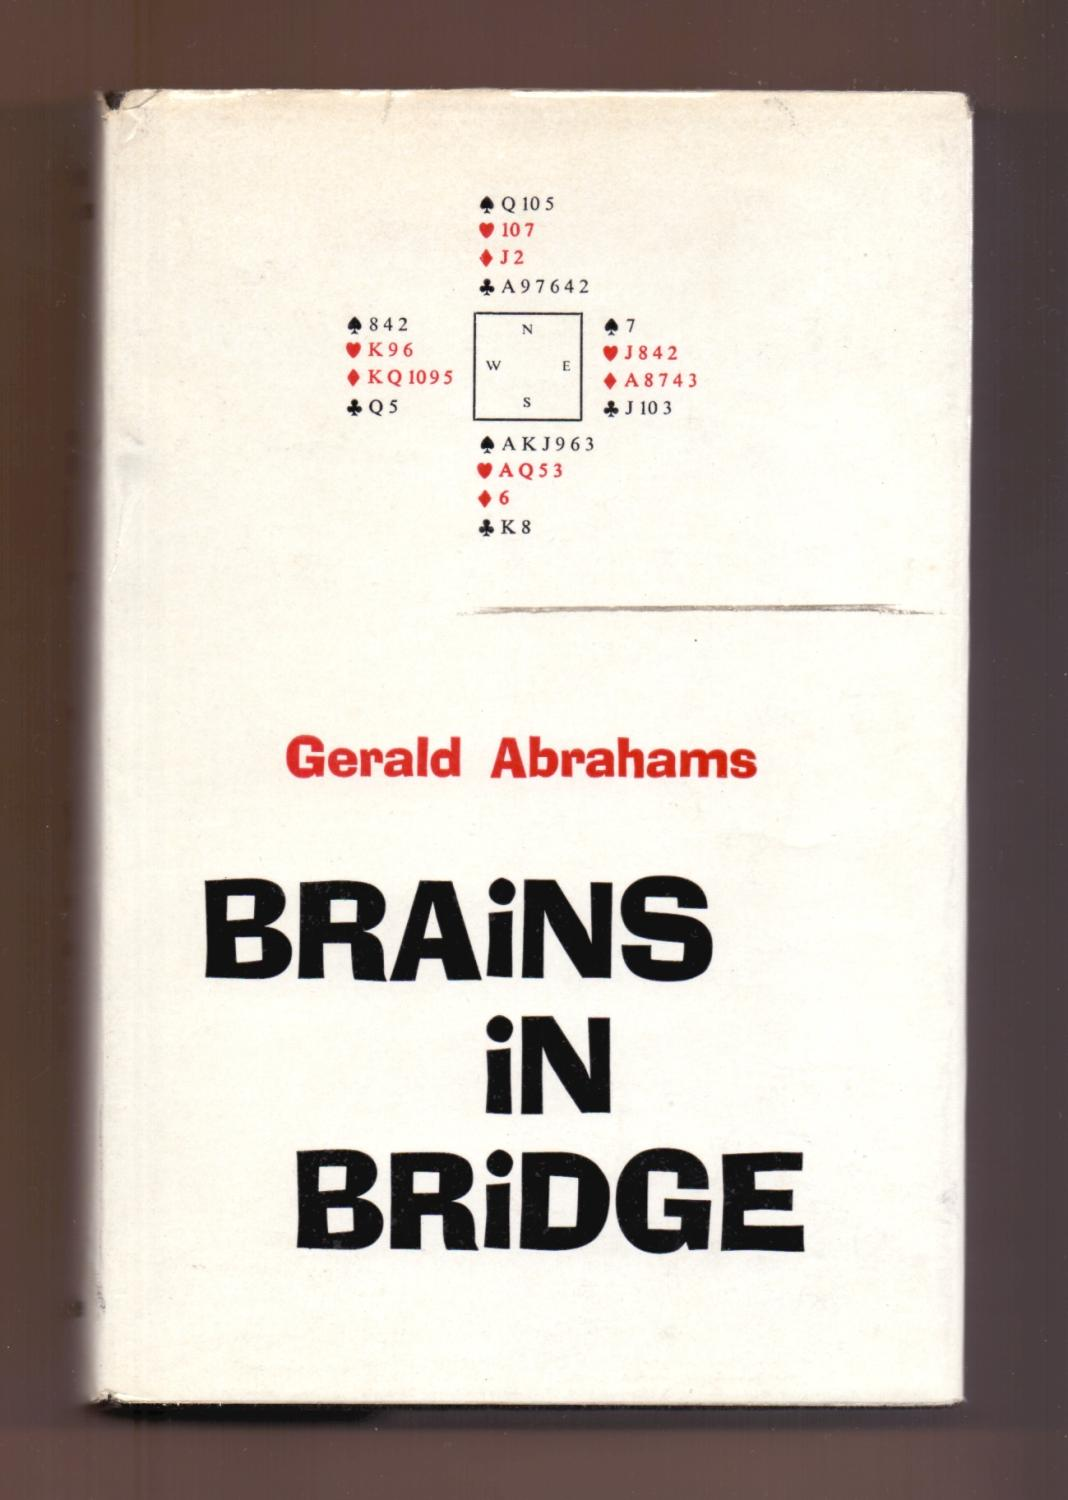 Brains in Bridge, Gerald Abrahams, Constable and Company, 1962, ISBN ?